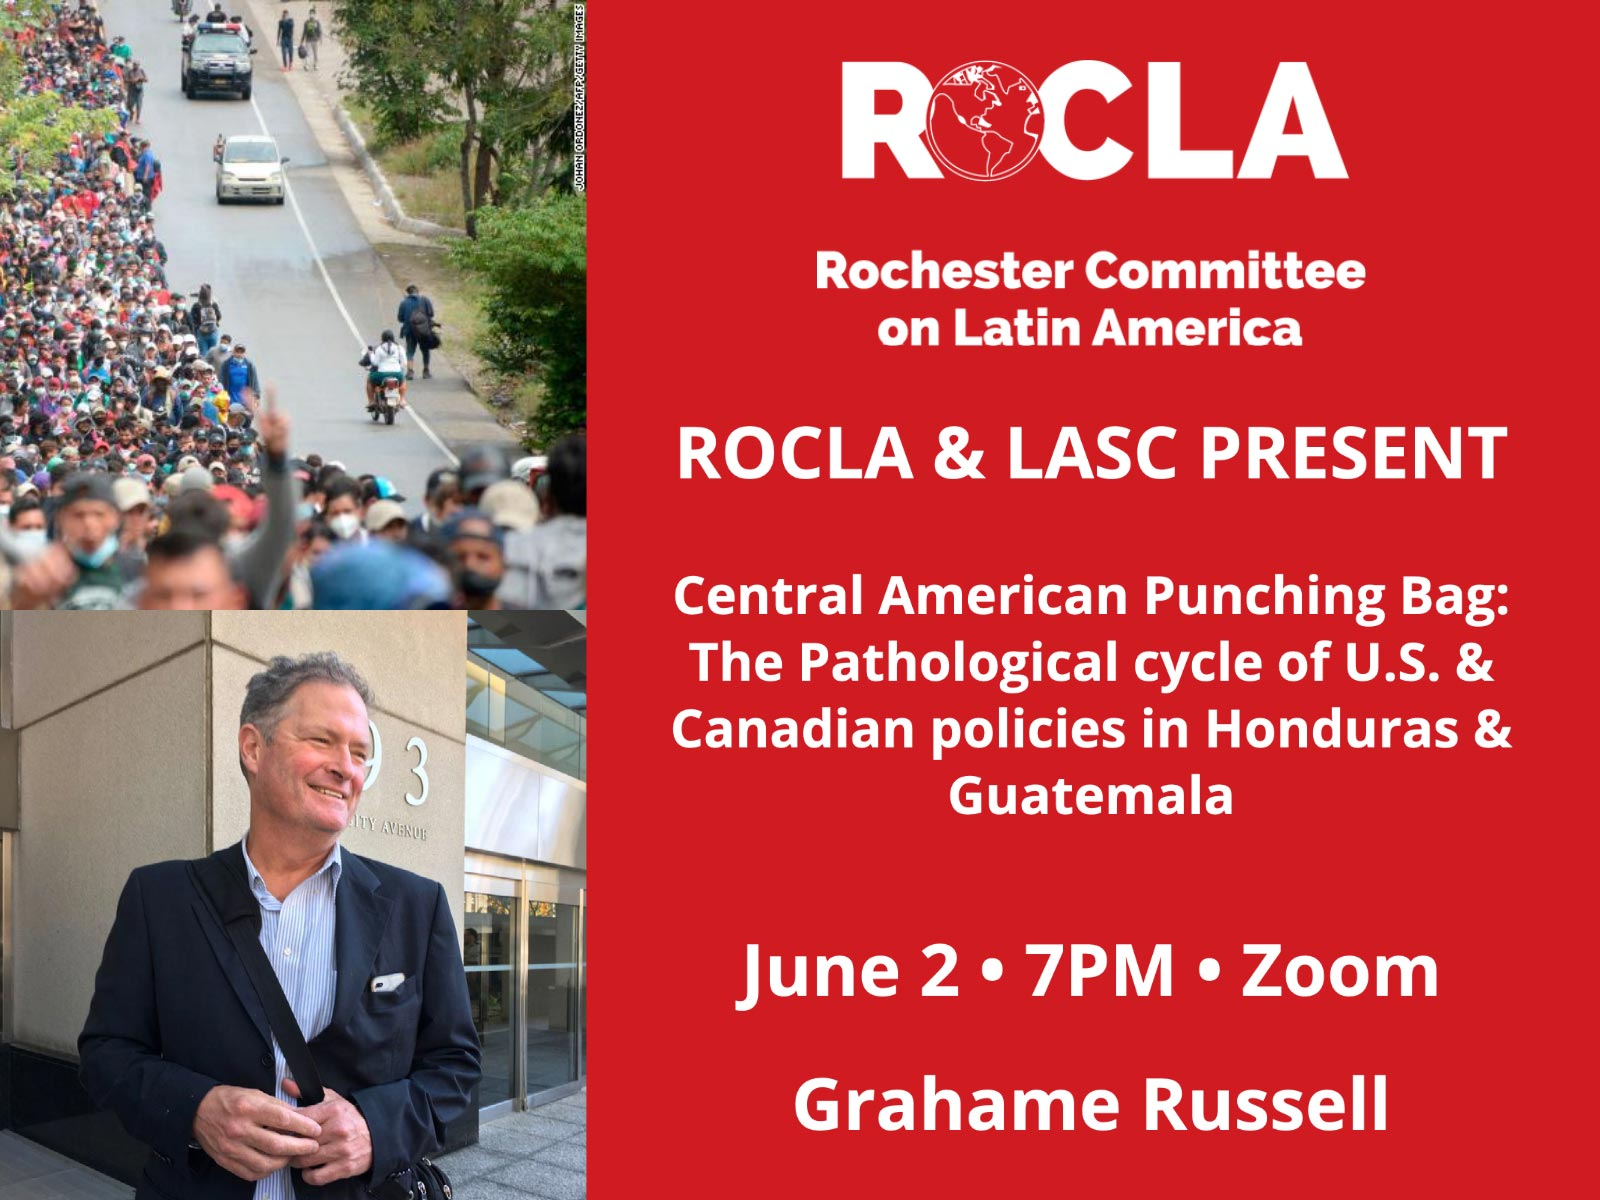 June 2 2021 - Zoom - Central American Punching Bag: The Pathological cycle of U.S. & Canadian policies in Honduras & Guatemala